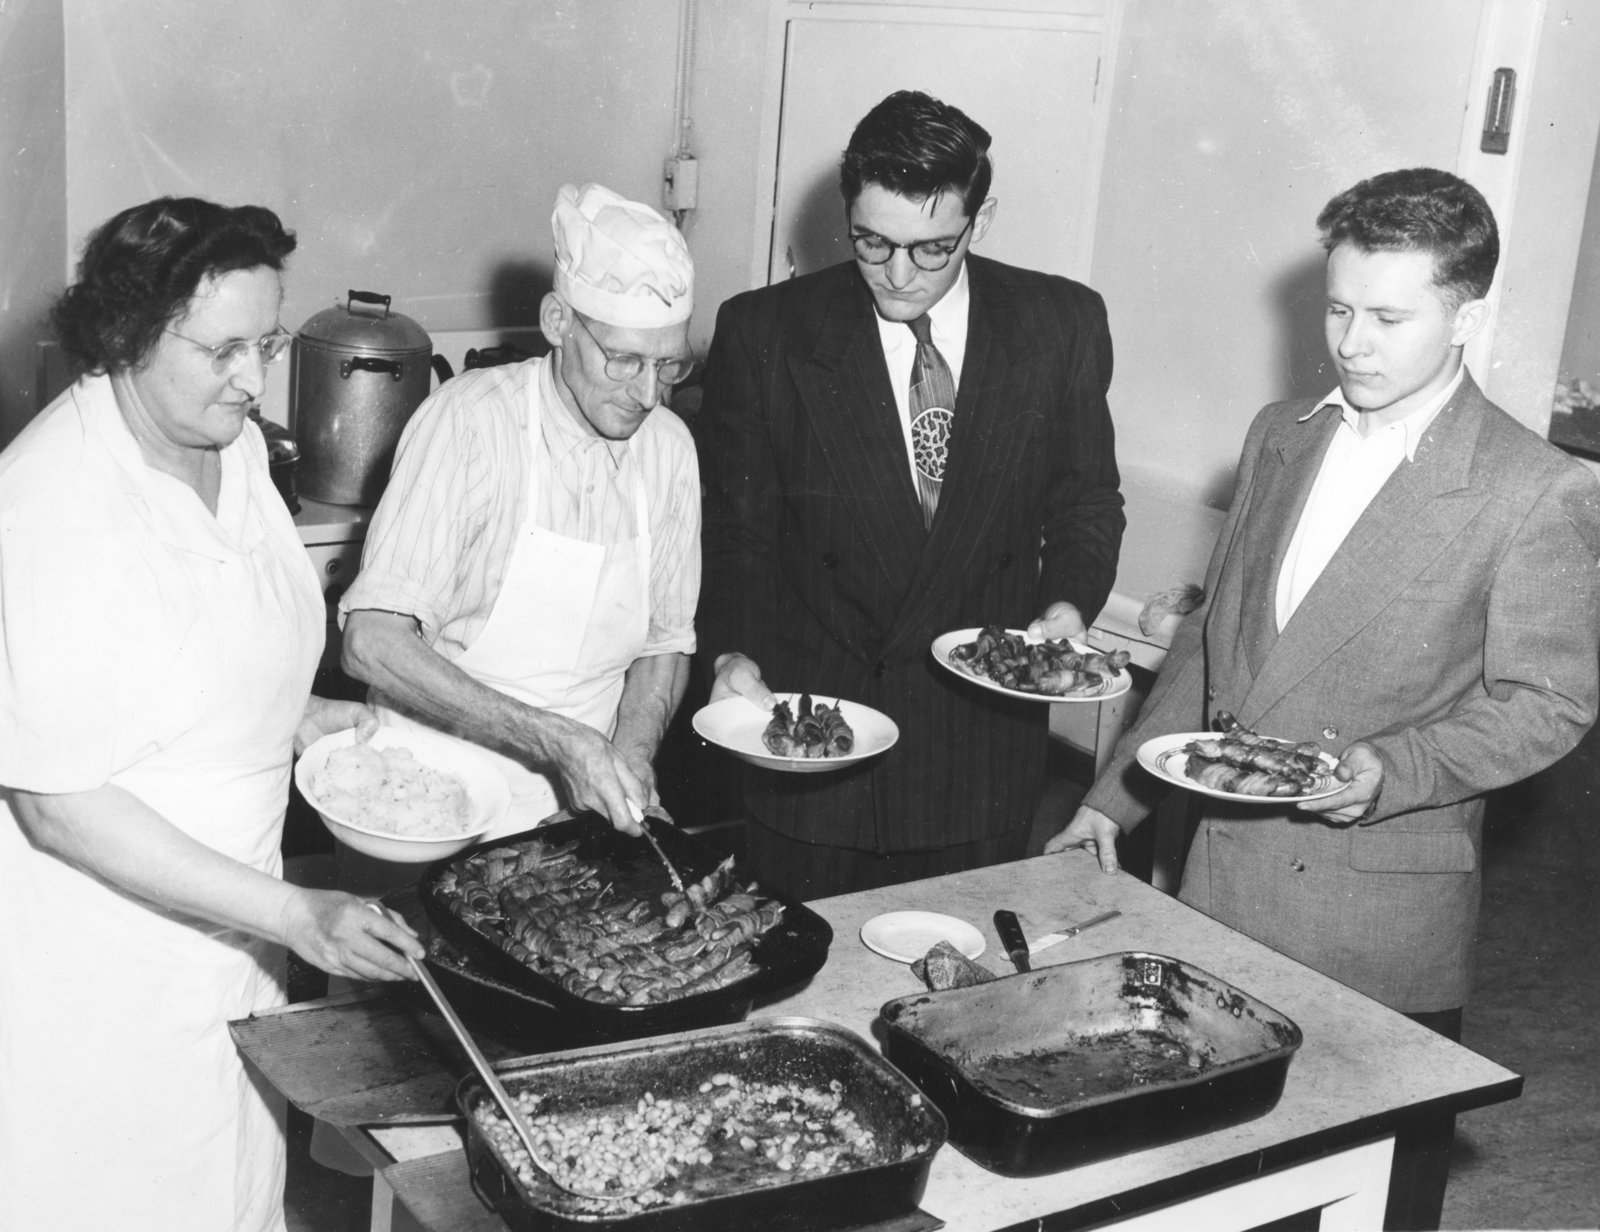 Mammy and Pappy Stalkie serving food to Waterloo College students